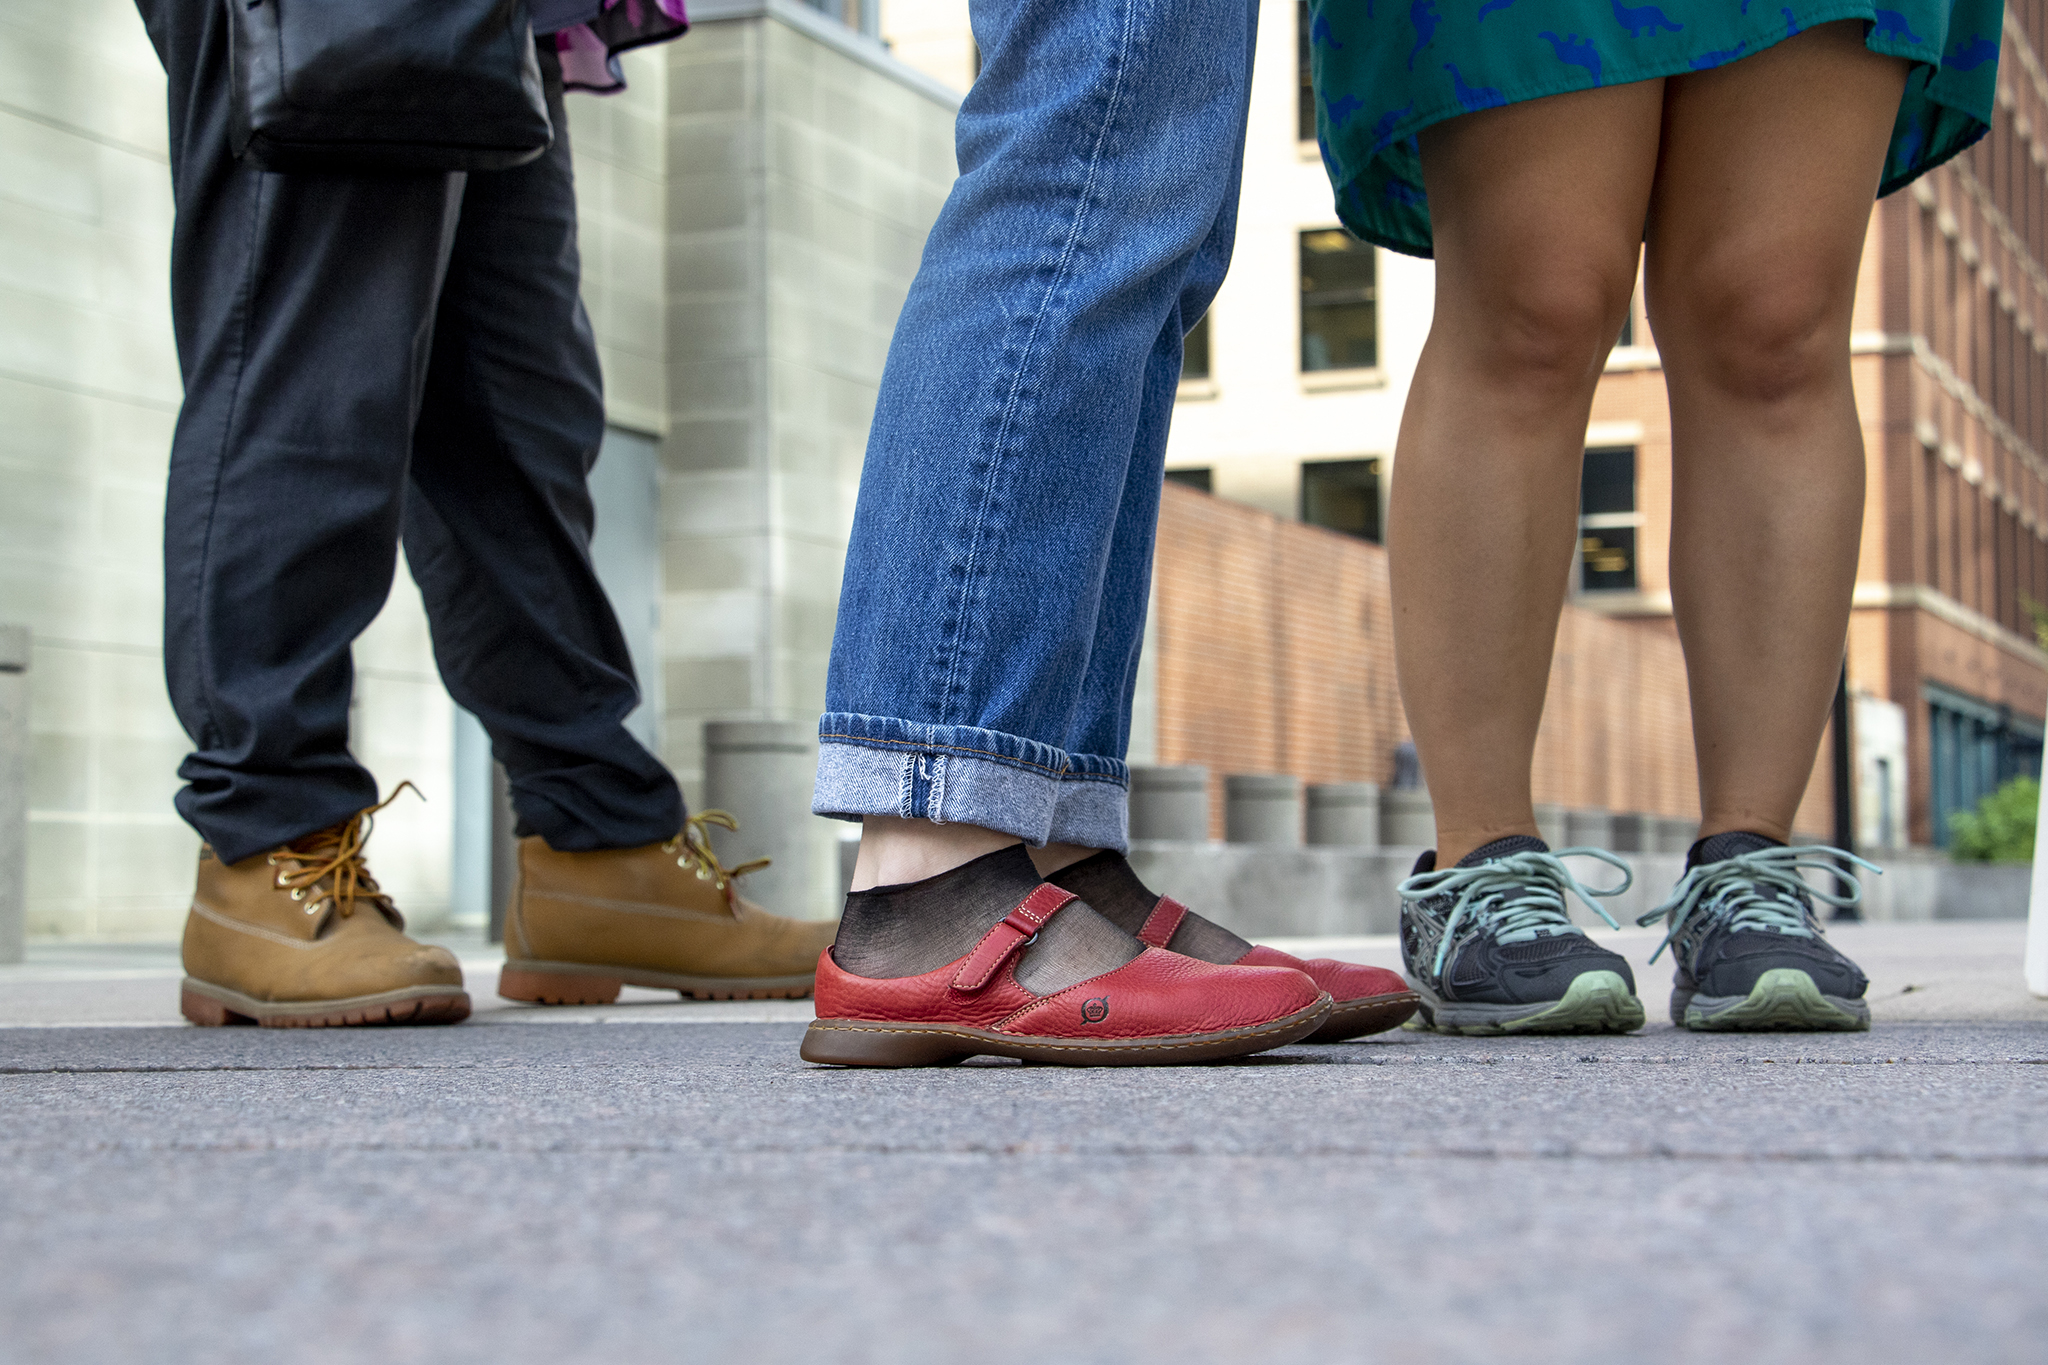 An Empathy Museum exhibit asks you walk in someone else's shoes,